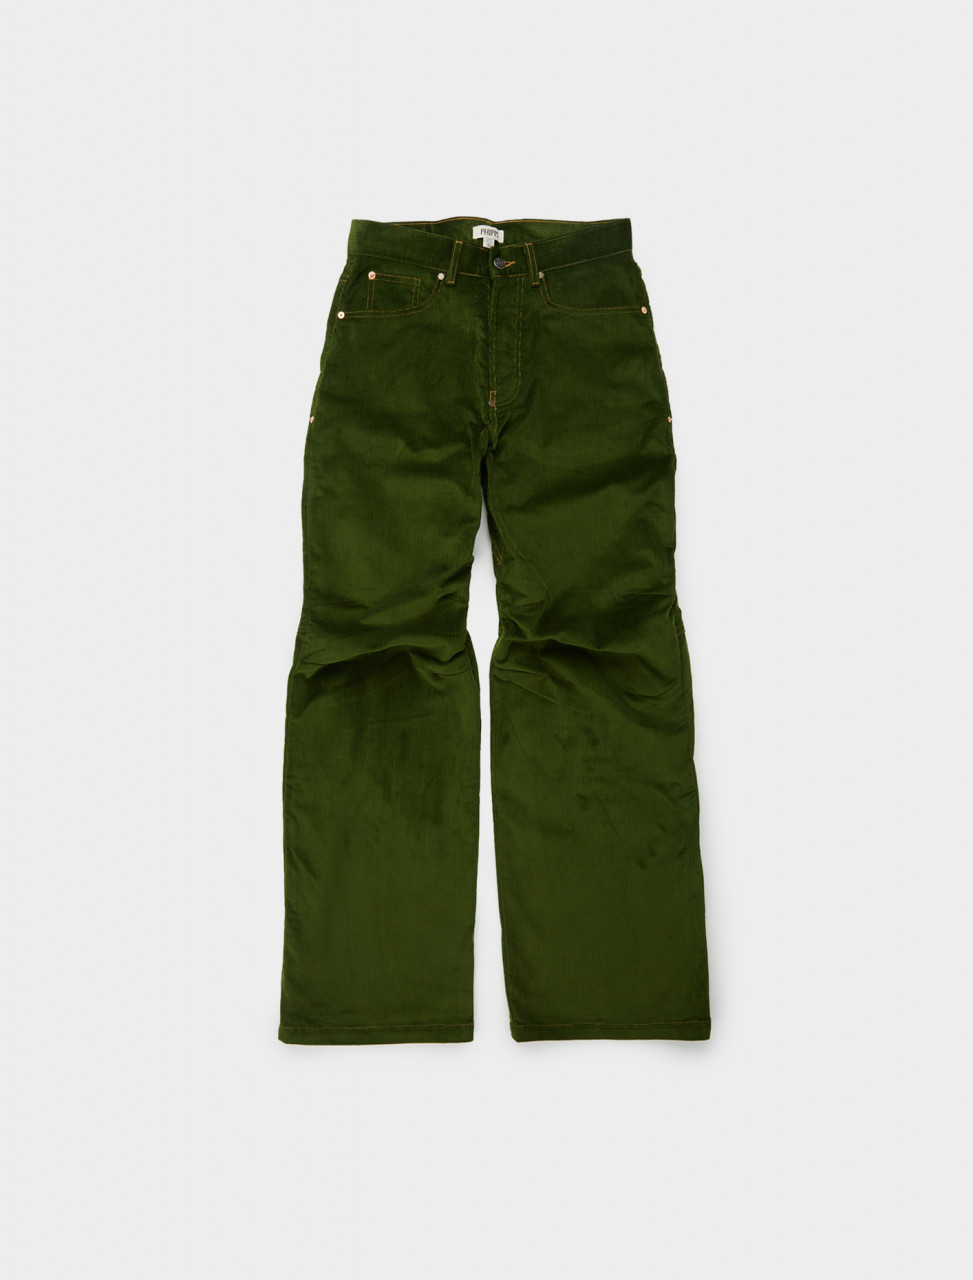 PHSS20-P13-B PHIPPS ARTICULATED JEANS